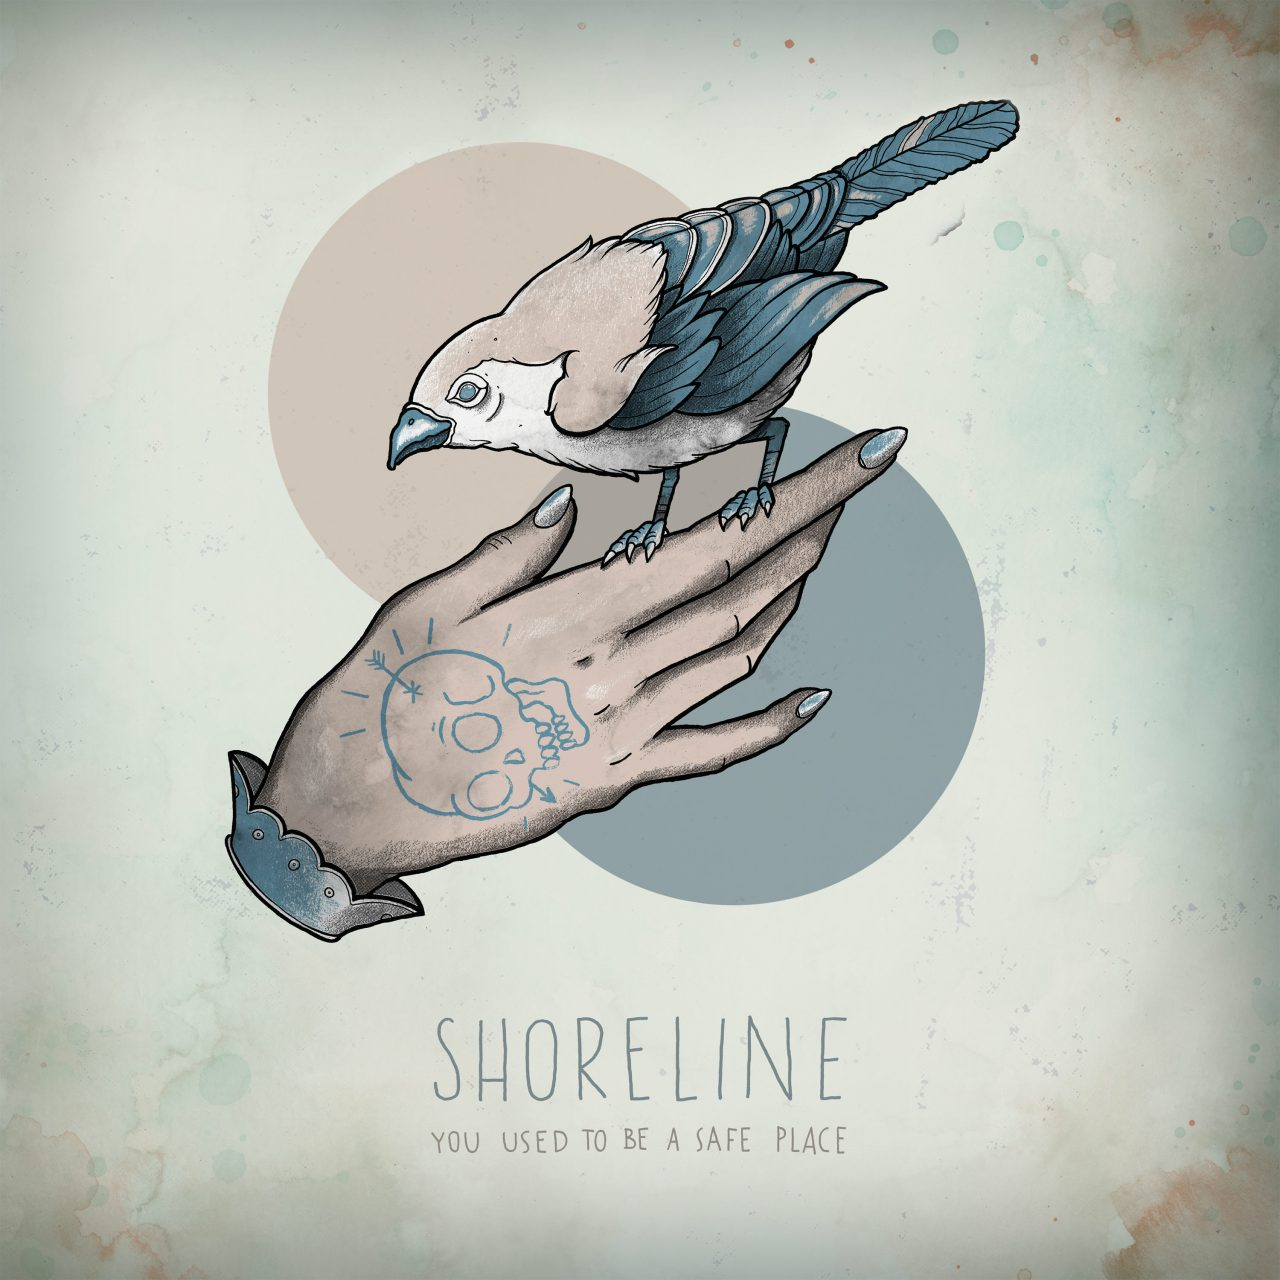 Shoreline – You Used to Be a Safe Place